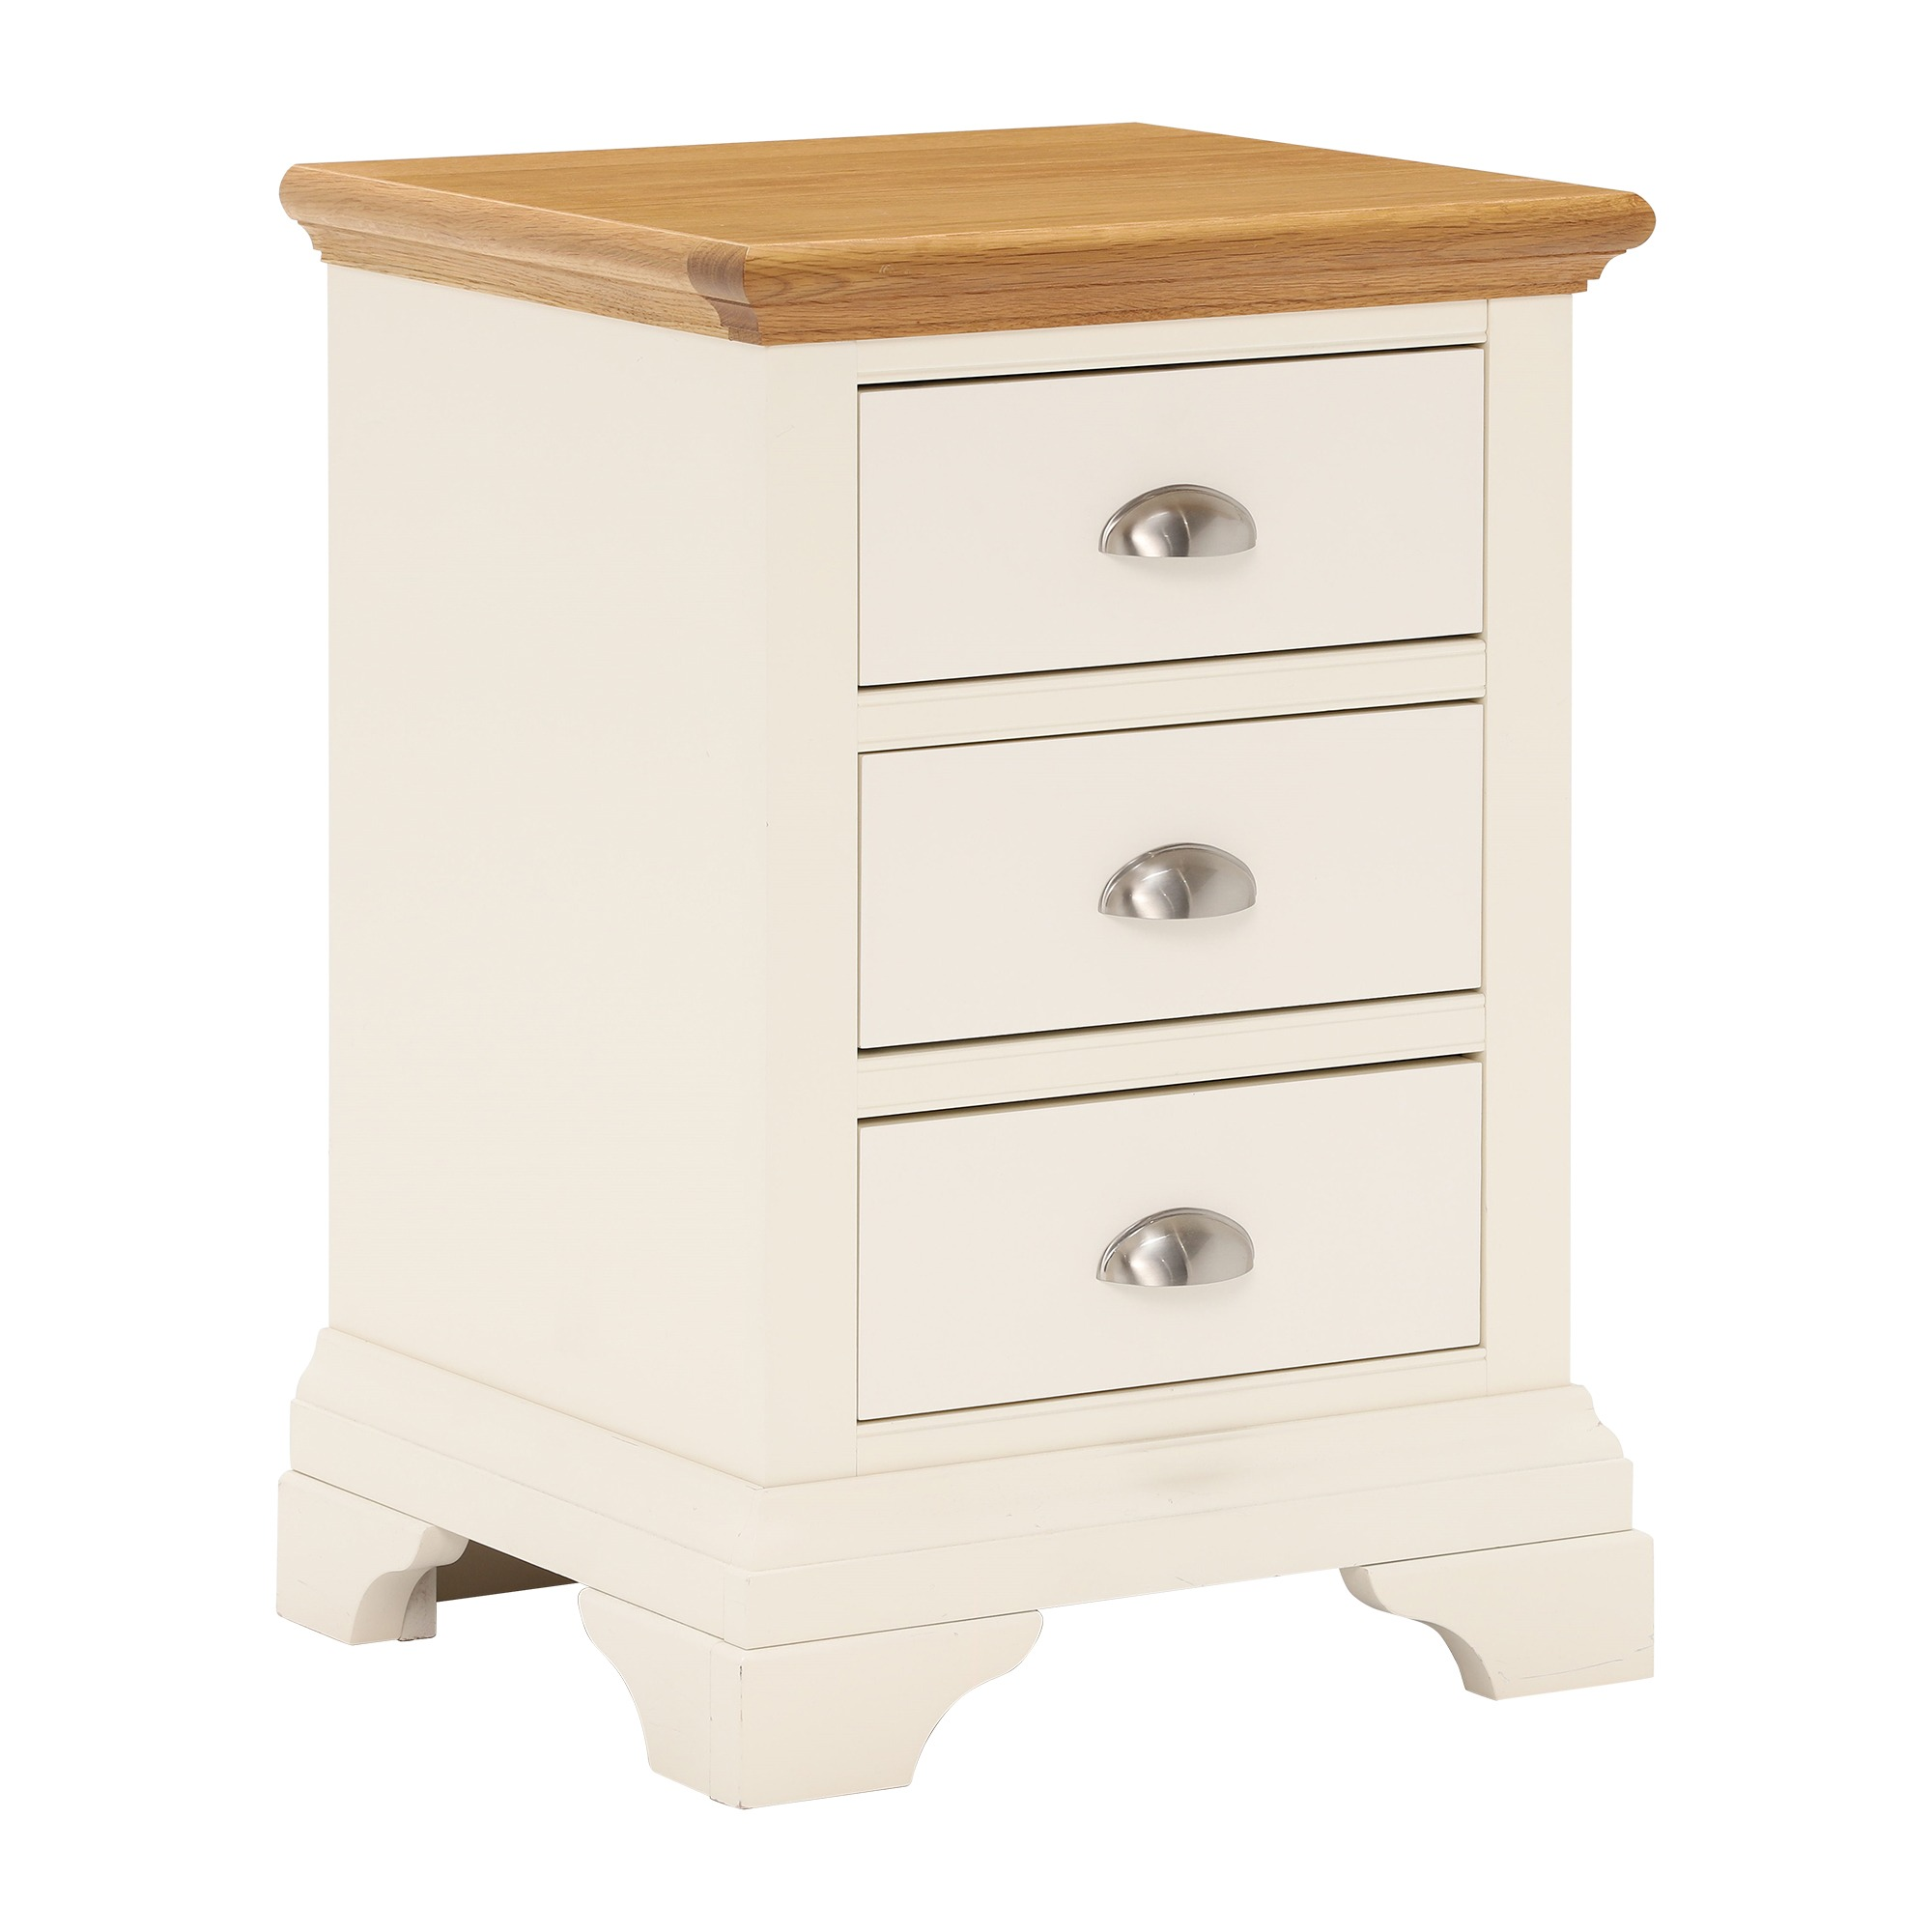 KYRA TWOTONE 3DR BEDSIDE - ANGLE DETAIL